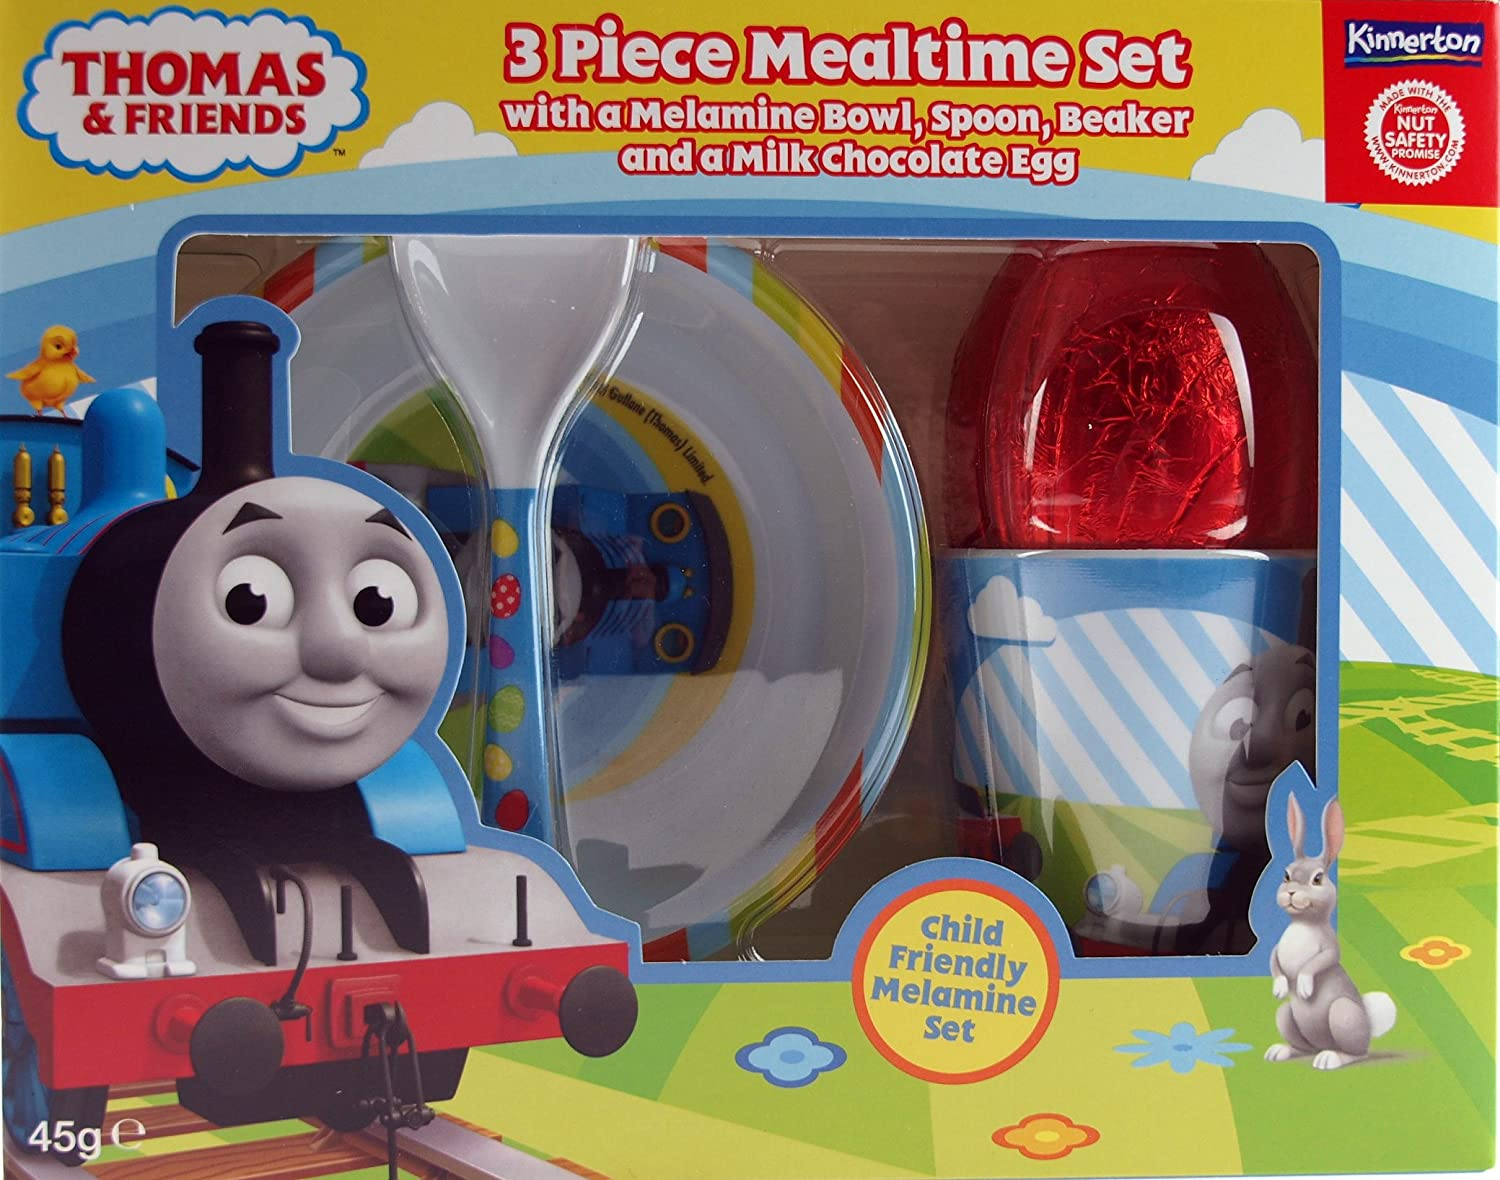 Thomas the tank engine chocolate easter egg breakfast gift set thomas the tank engine chocolate easter egg breakfast gift set bowl cup spoon amazon kitchen home negle Image collections